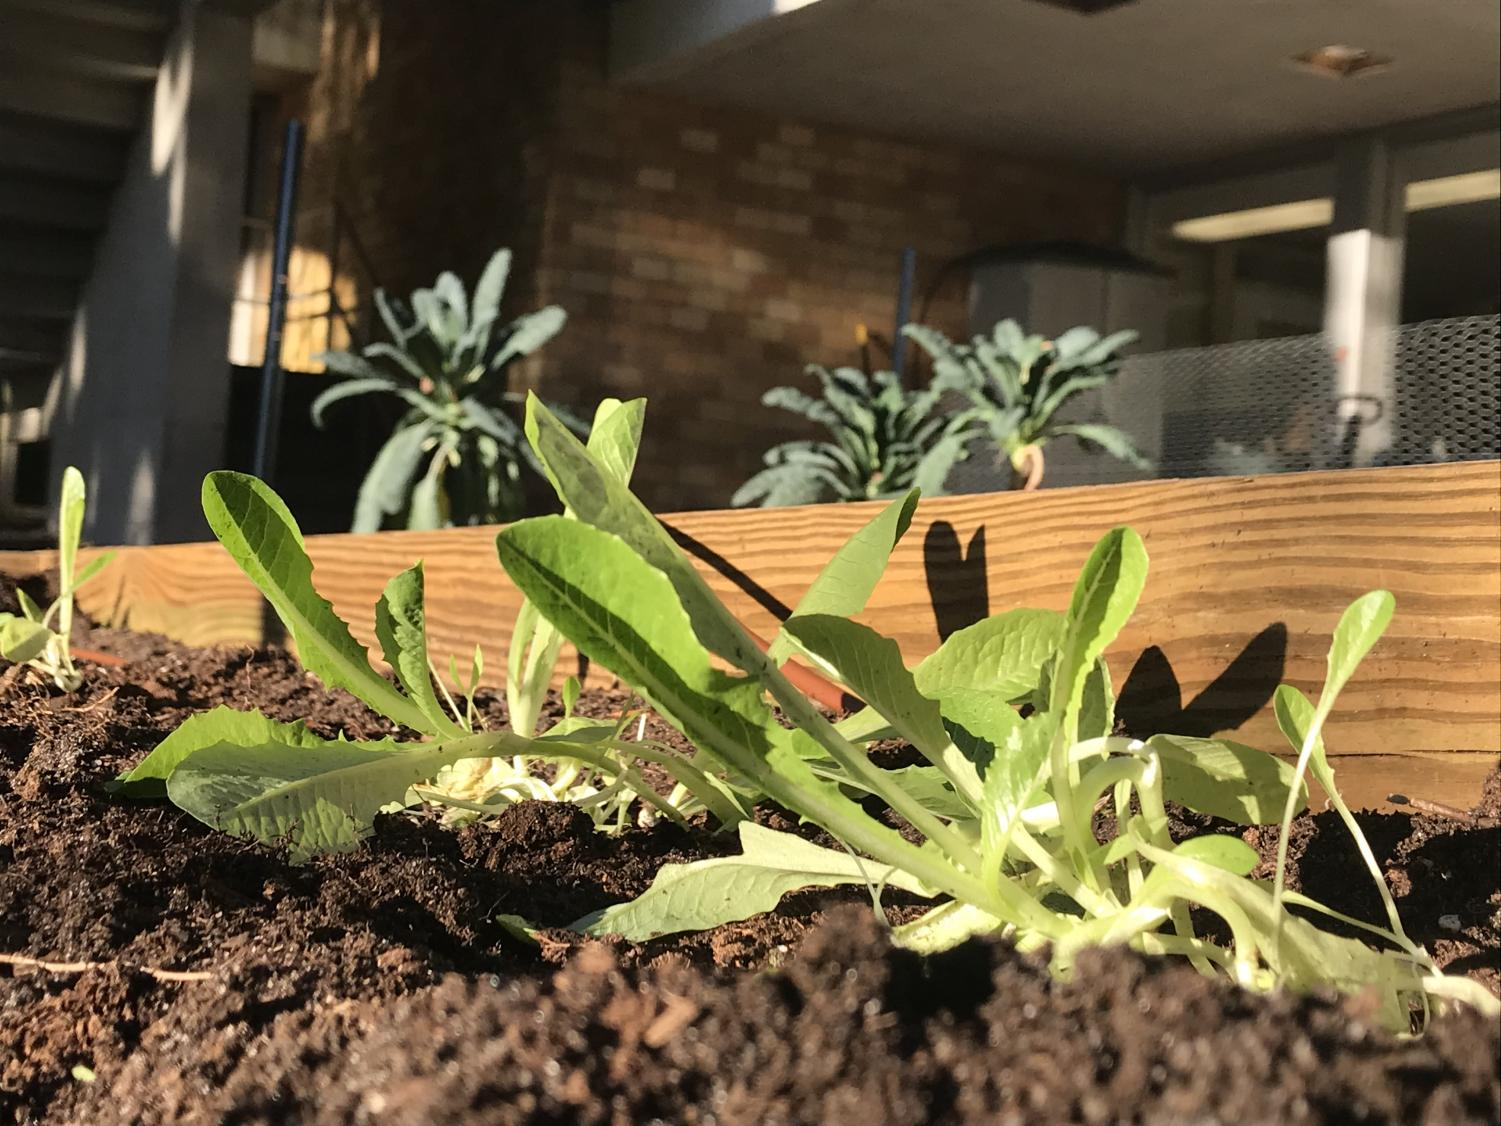 Lettuce growing in the JU garden located behind the library. The garden also grows kale, tomatoes, and potatoes.